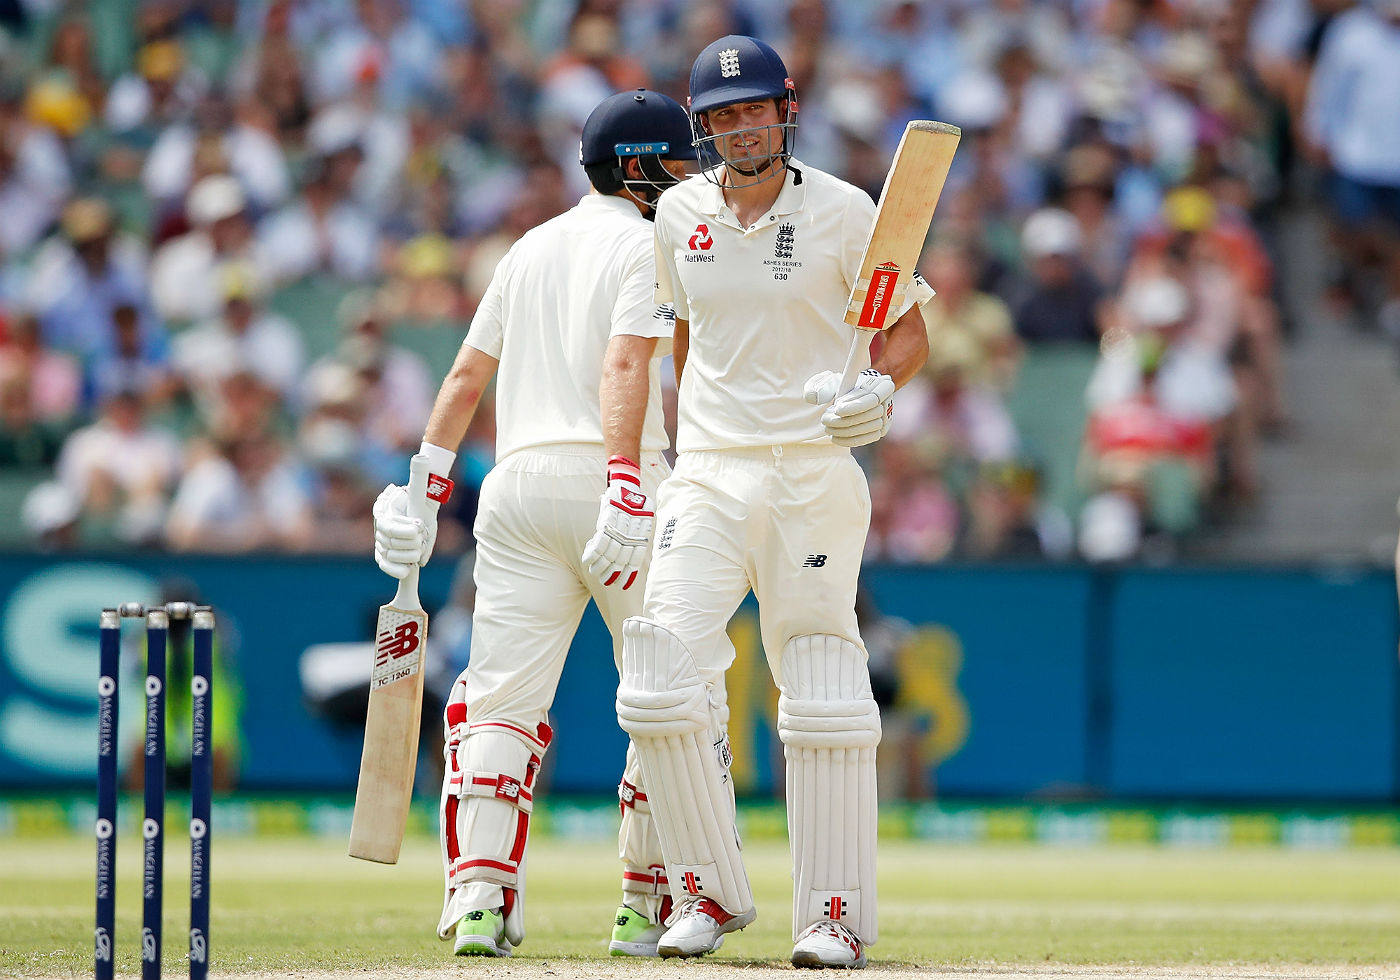 Can England win the 4th Test or will Rain play spoil sport?